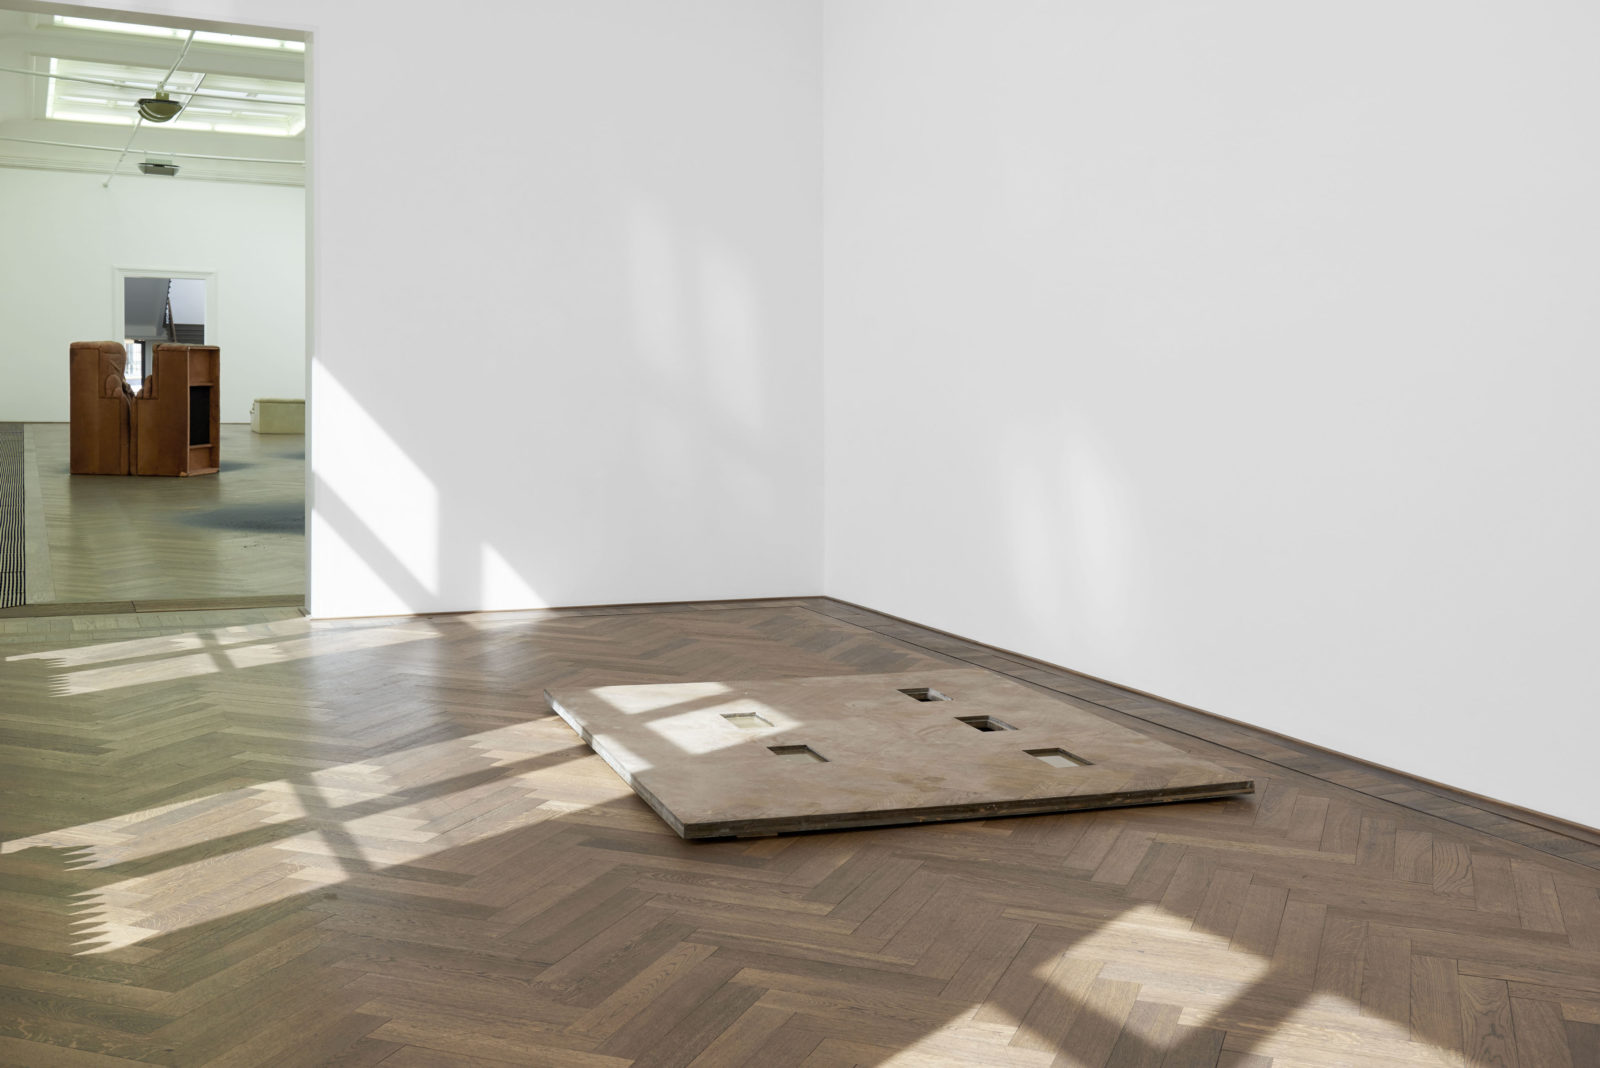 Installation View, Dora Budor at Kunsthalle Basel